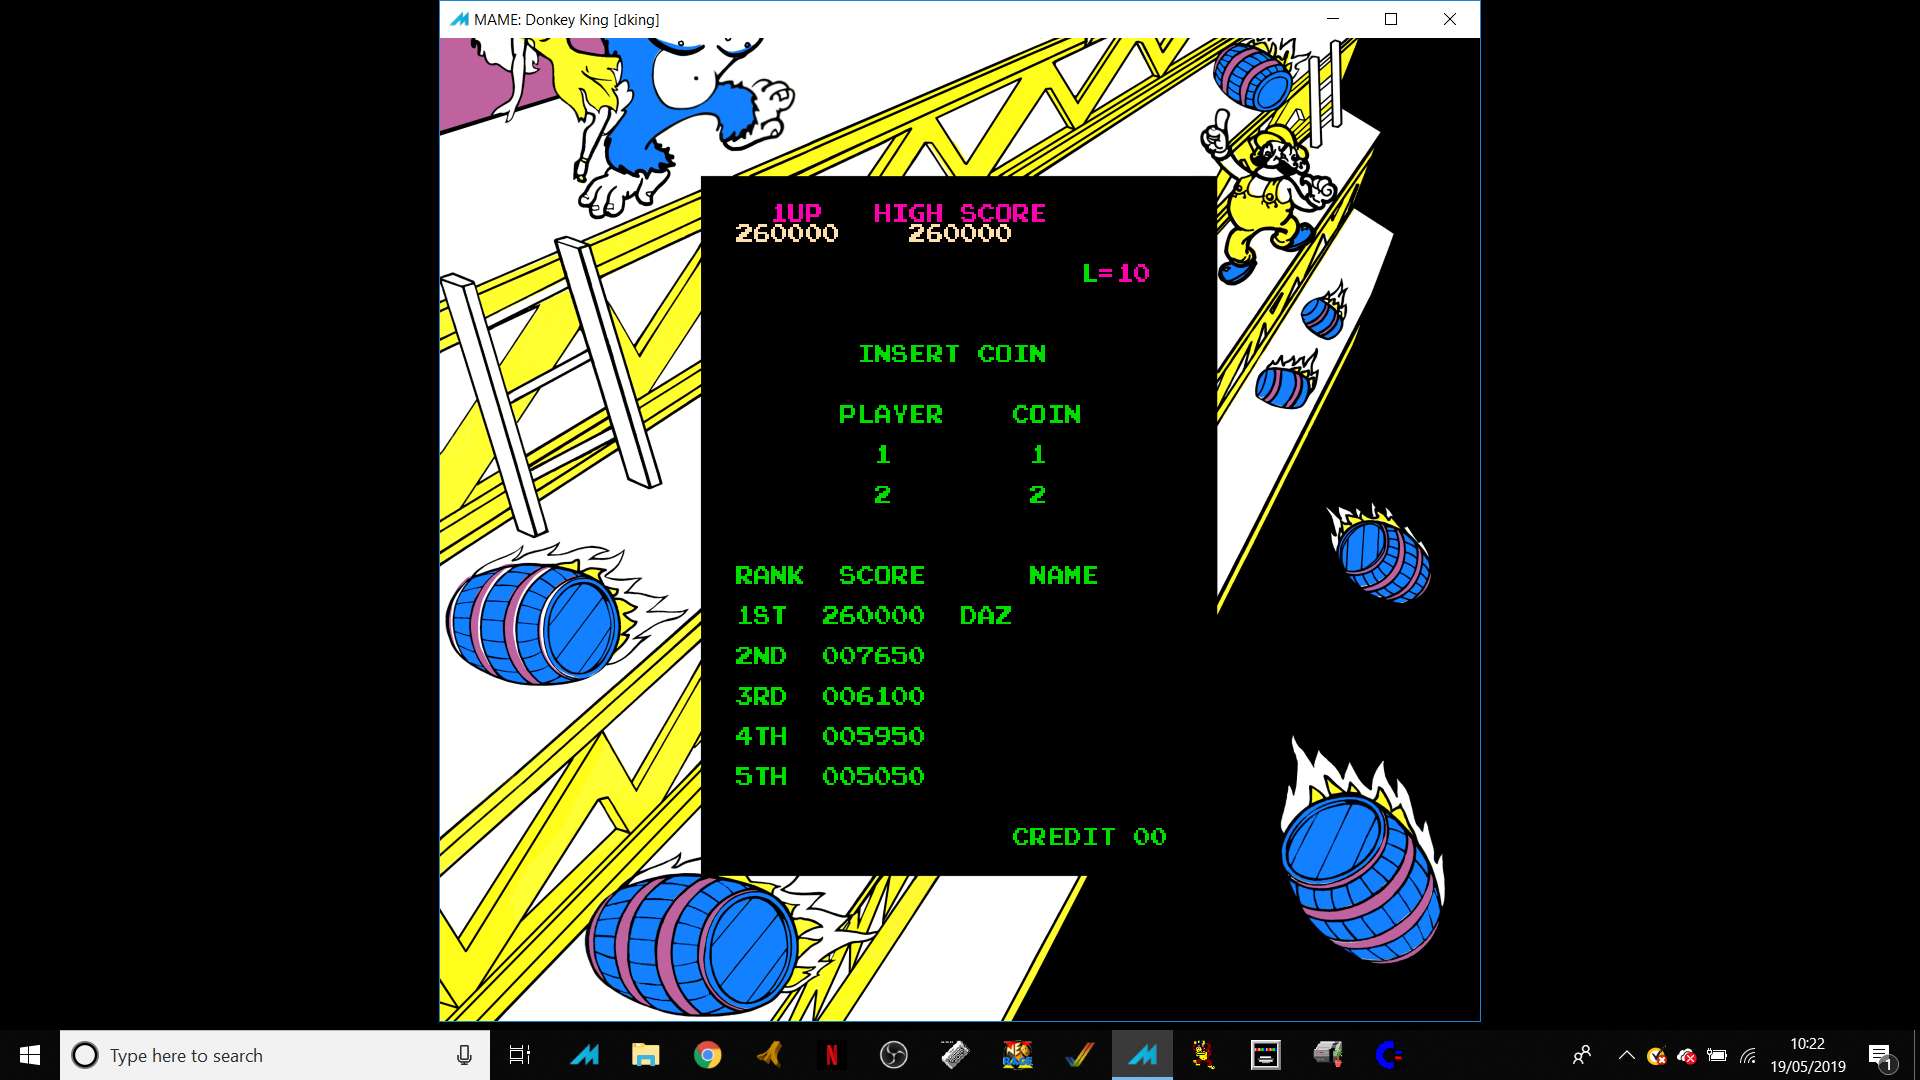 Ivanstorm1973: Donkey King [dking] (Arcade Emulated / M.A.M.E.) 260,000 points on 2019-05-19 06:14:08